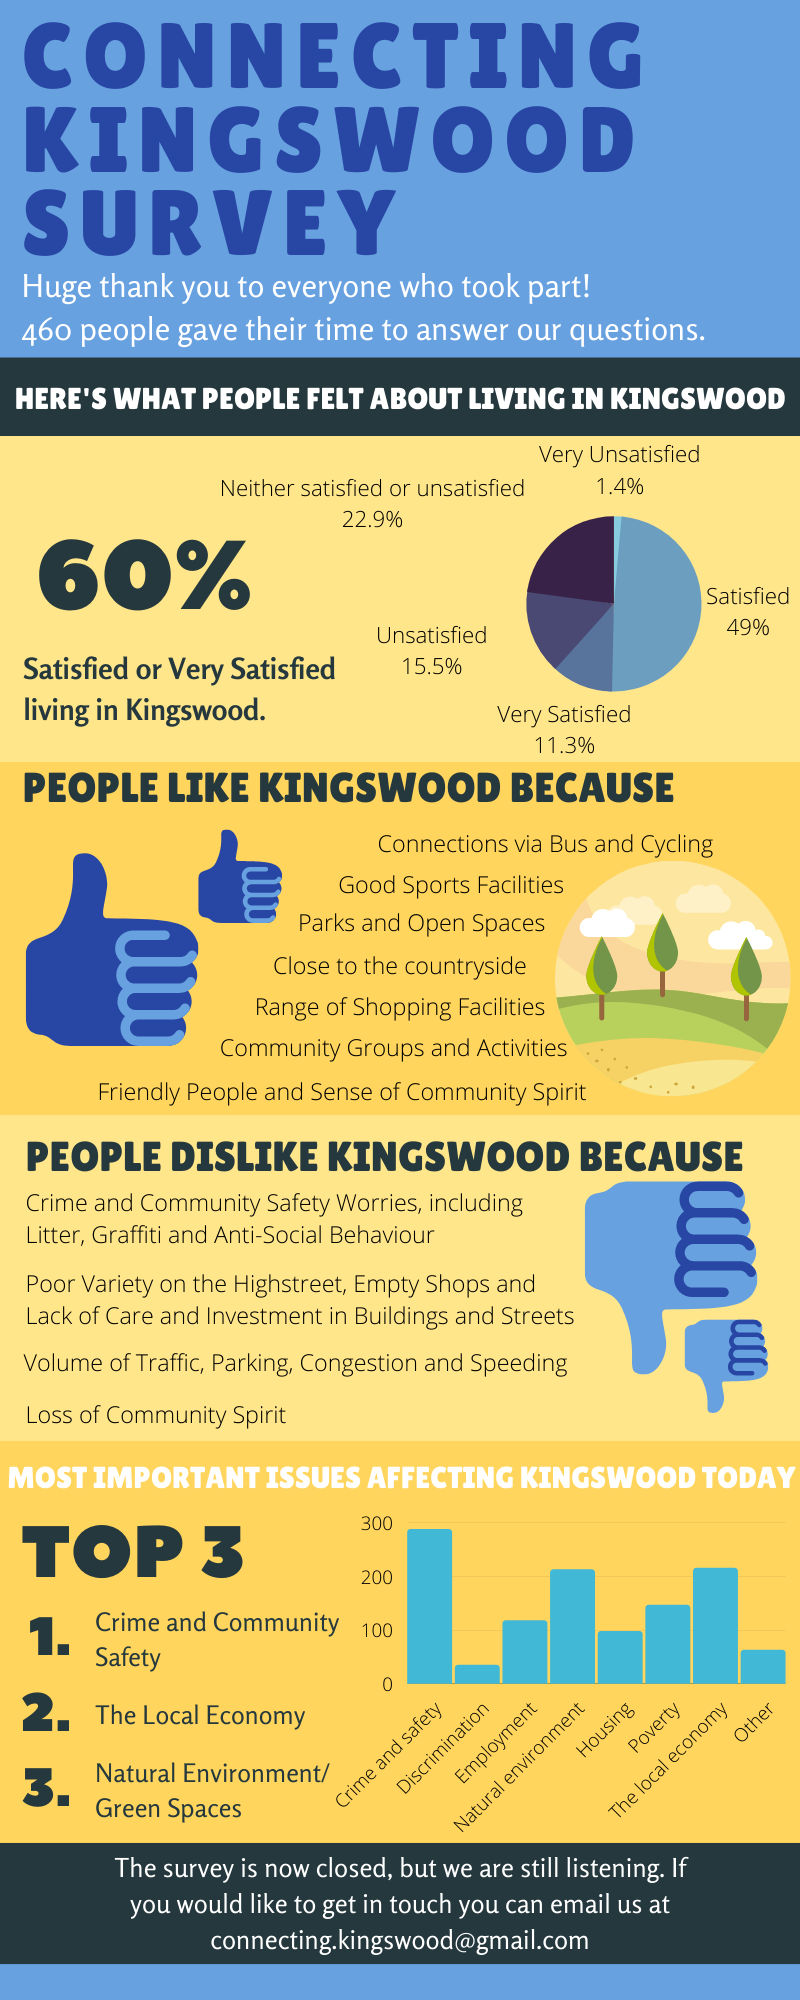 Connecting Kingswood: Your views really count